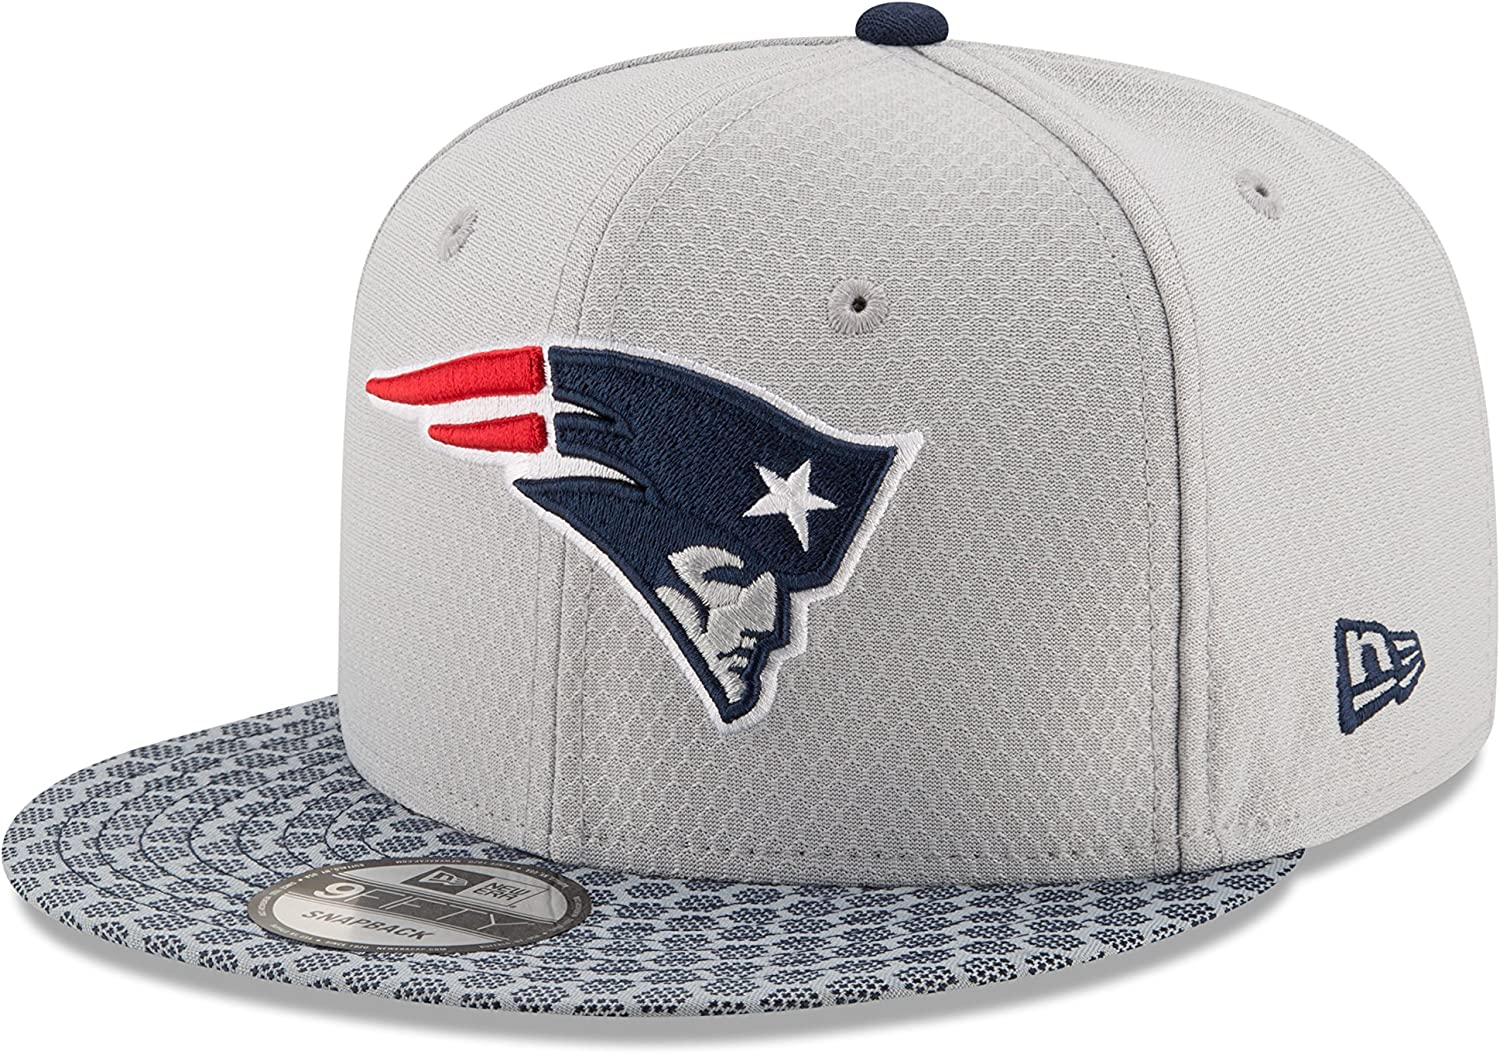 New Era 59Fifty Hat New England Patriots NFL 2017 On Field Sideline Fitted Headwear Cap